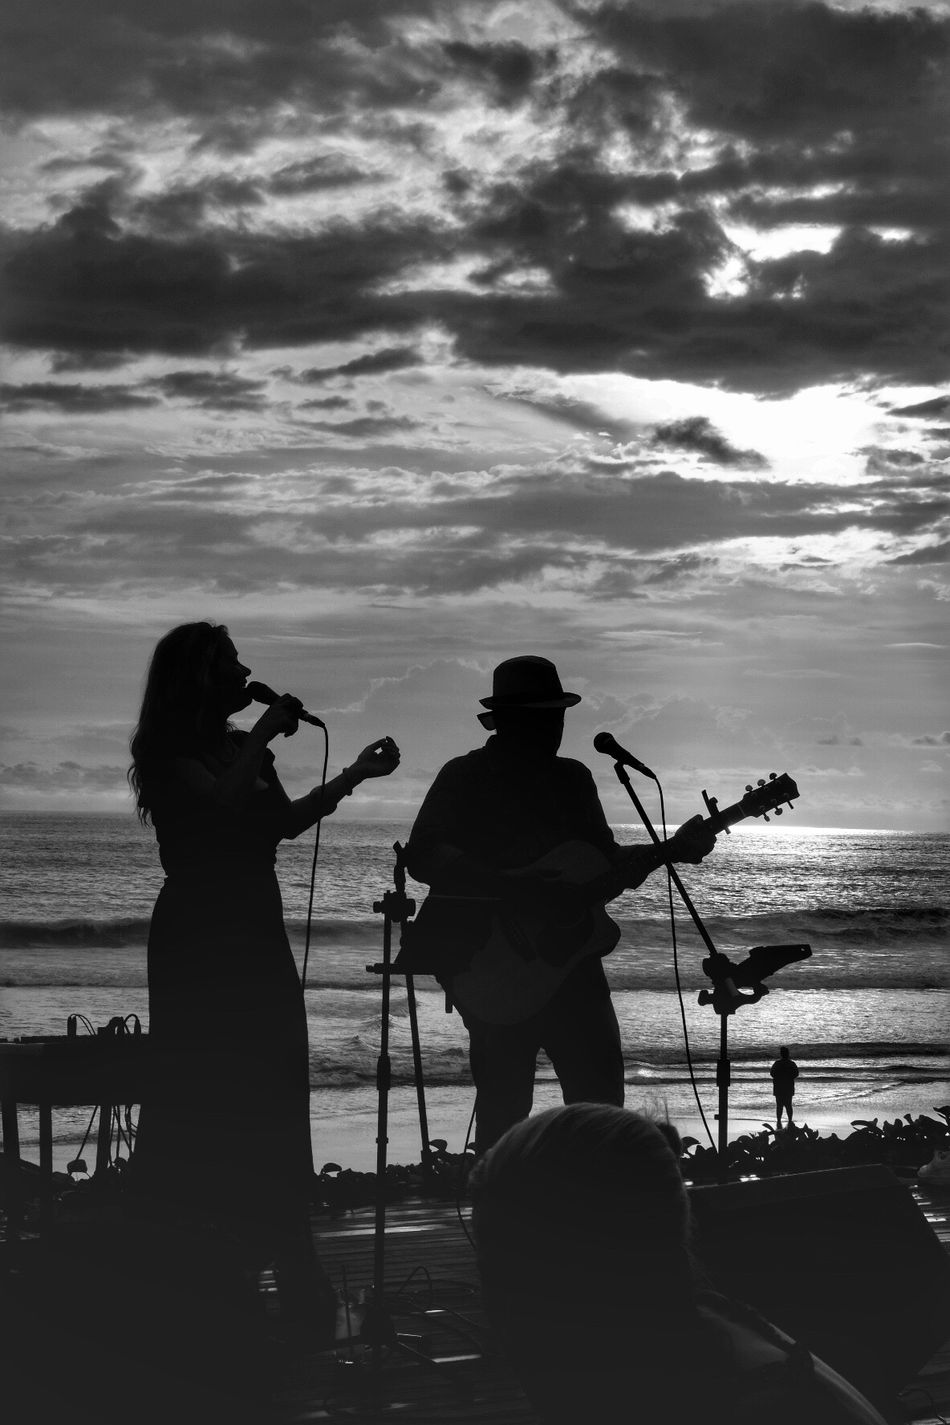 song for sunset Photography Themes Camera - Photographic Equipment Water Sea Standing Cloud - Sky Women Sky Outdoors nature Adult Day People Sunset Sunset_collection Sunset Silhouettes Blackandwhite Real People Duet Music Black And White Blackandwhite Photography Man Bali Bali, Indonesia INDONESIA